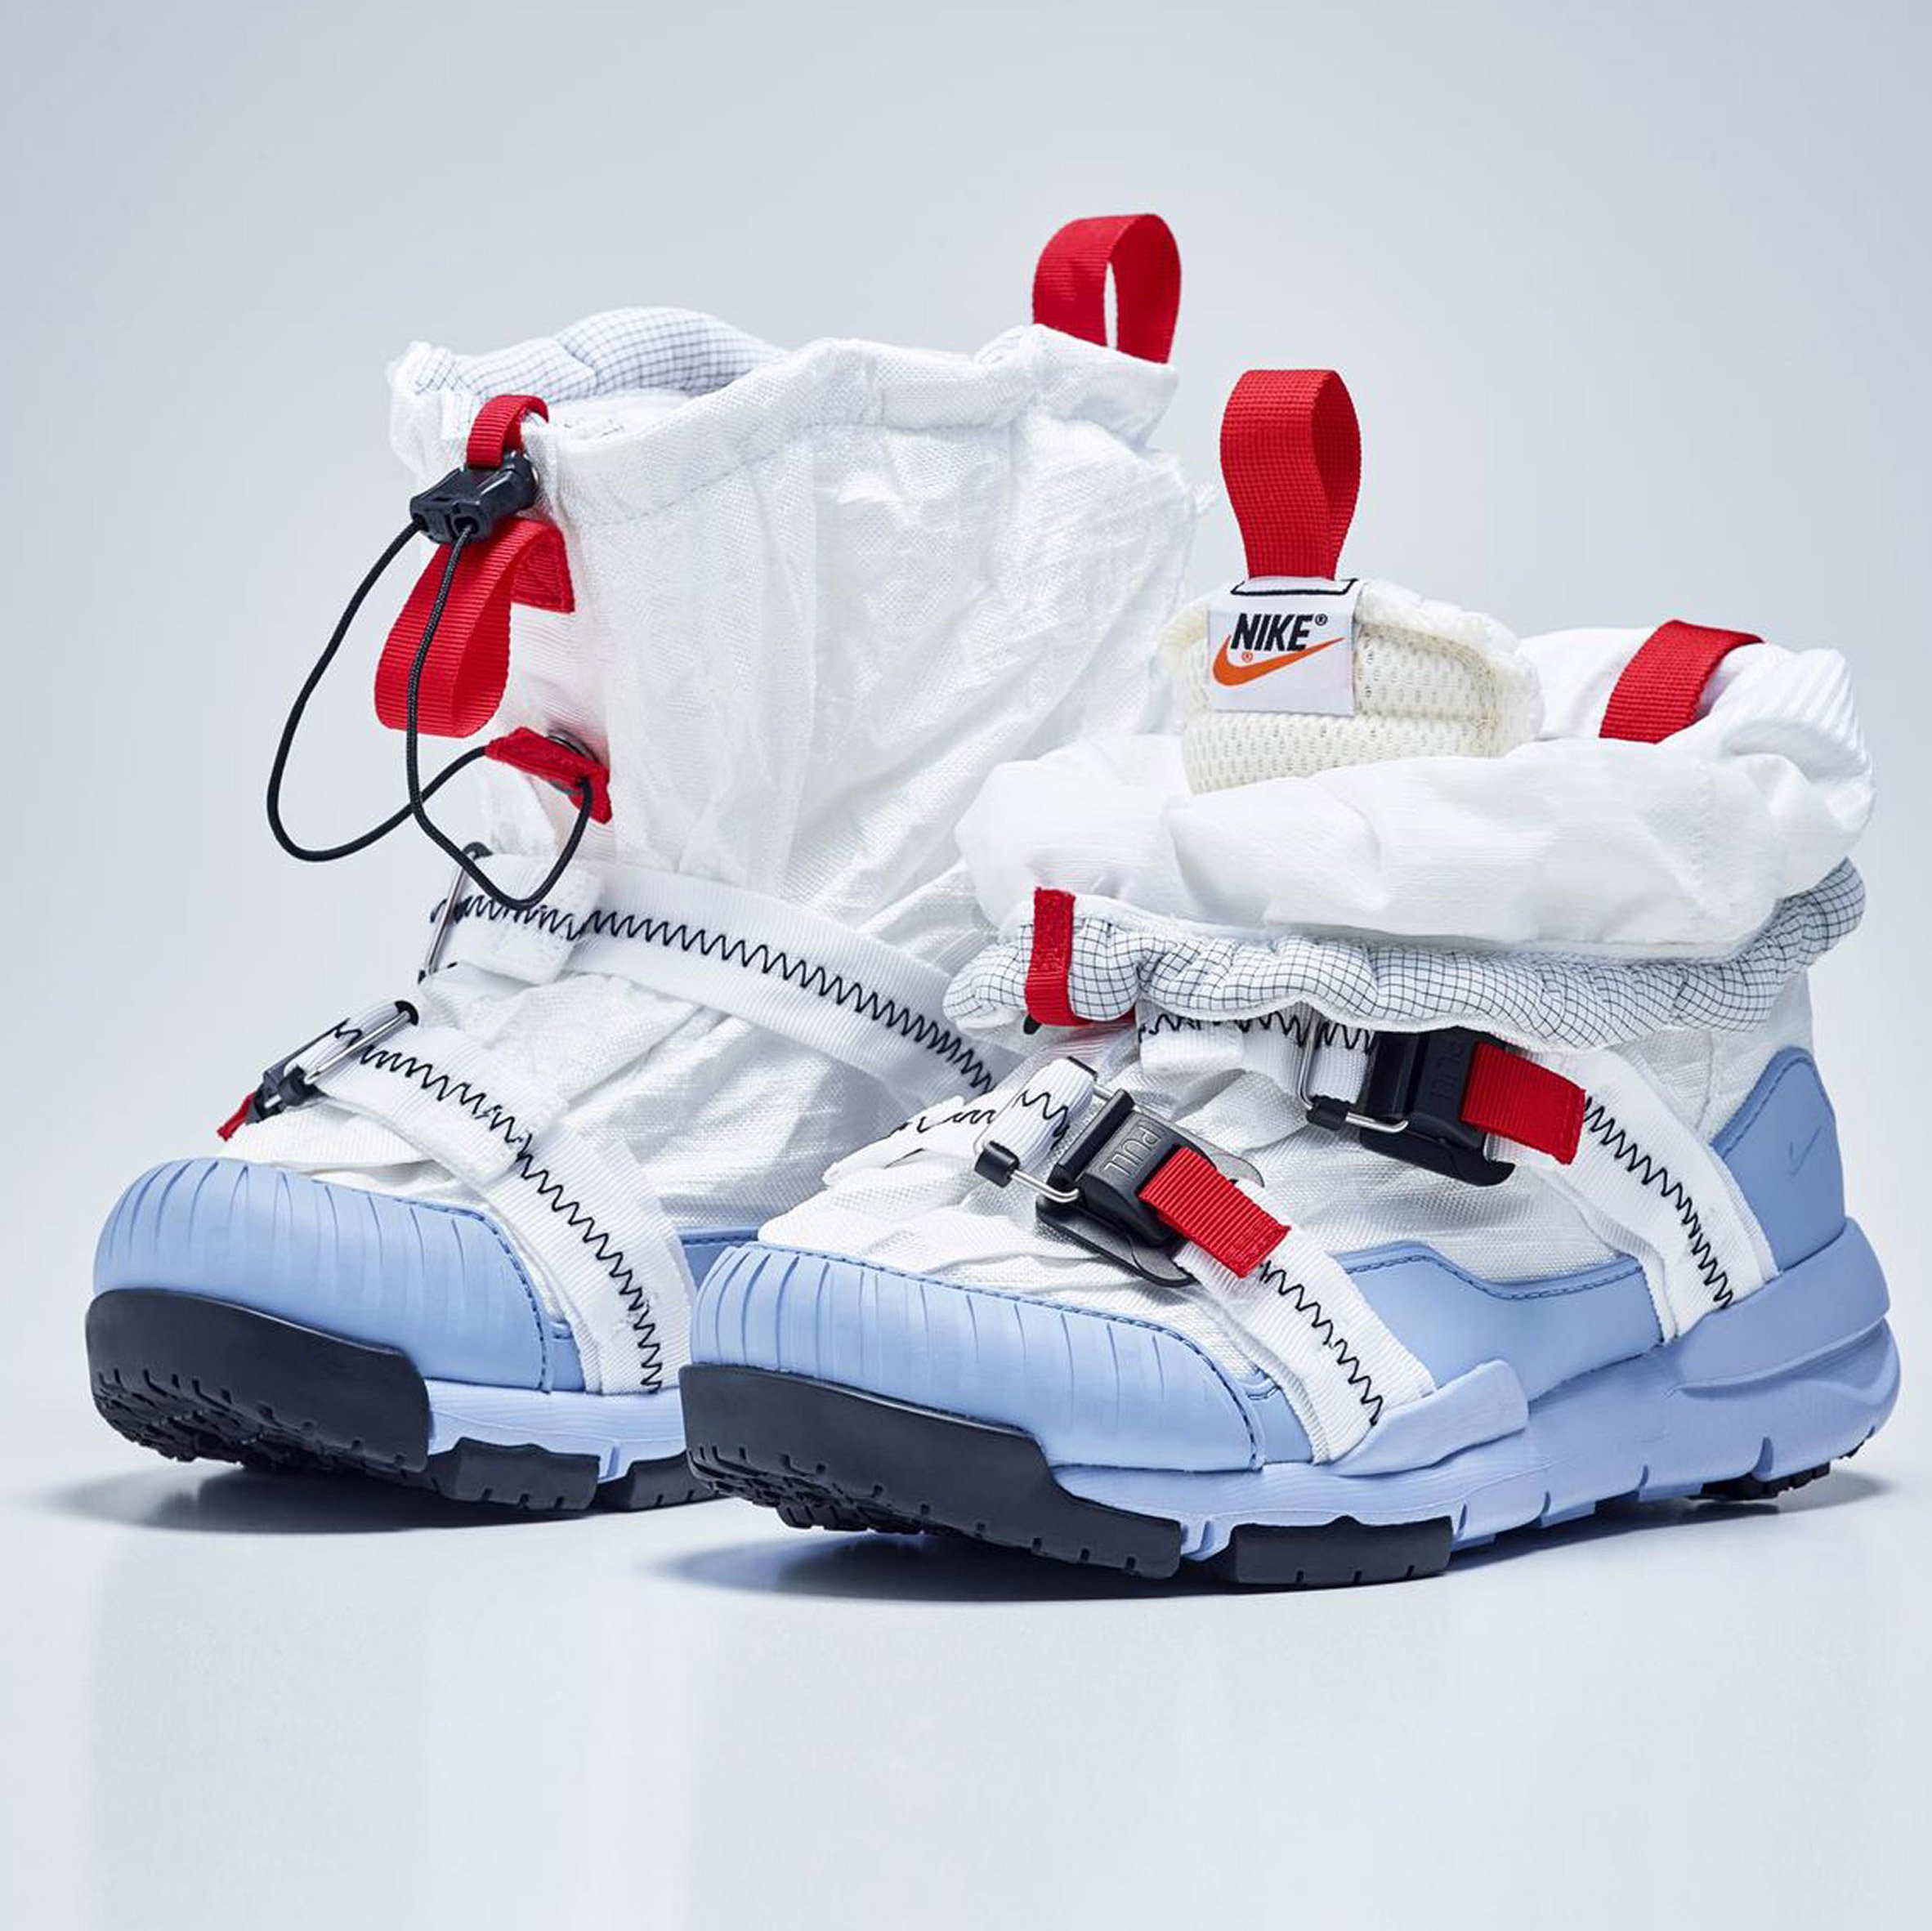 9891430b7a54ef Tom Sachs updates Nike Mars Yard trainer to resemble shoes worn by ...